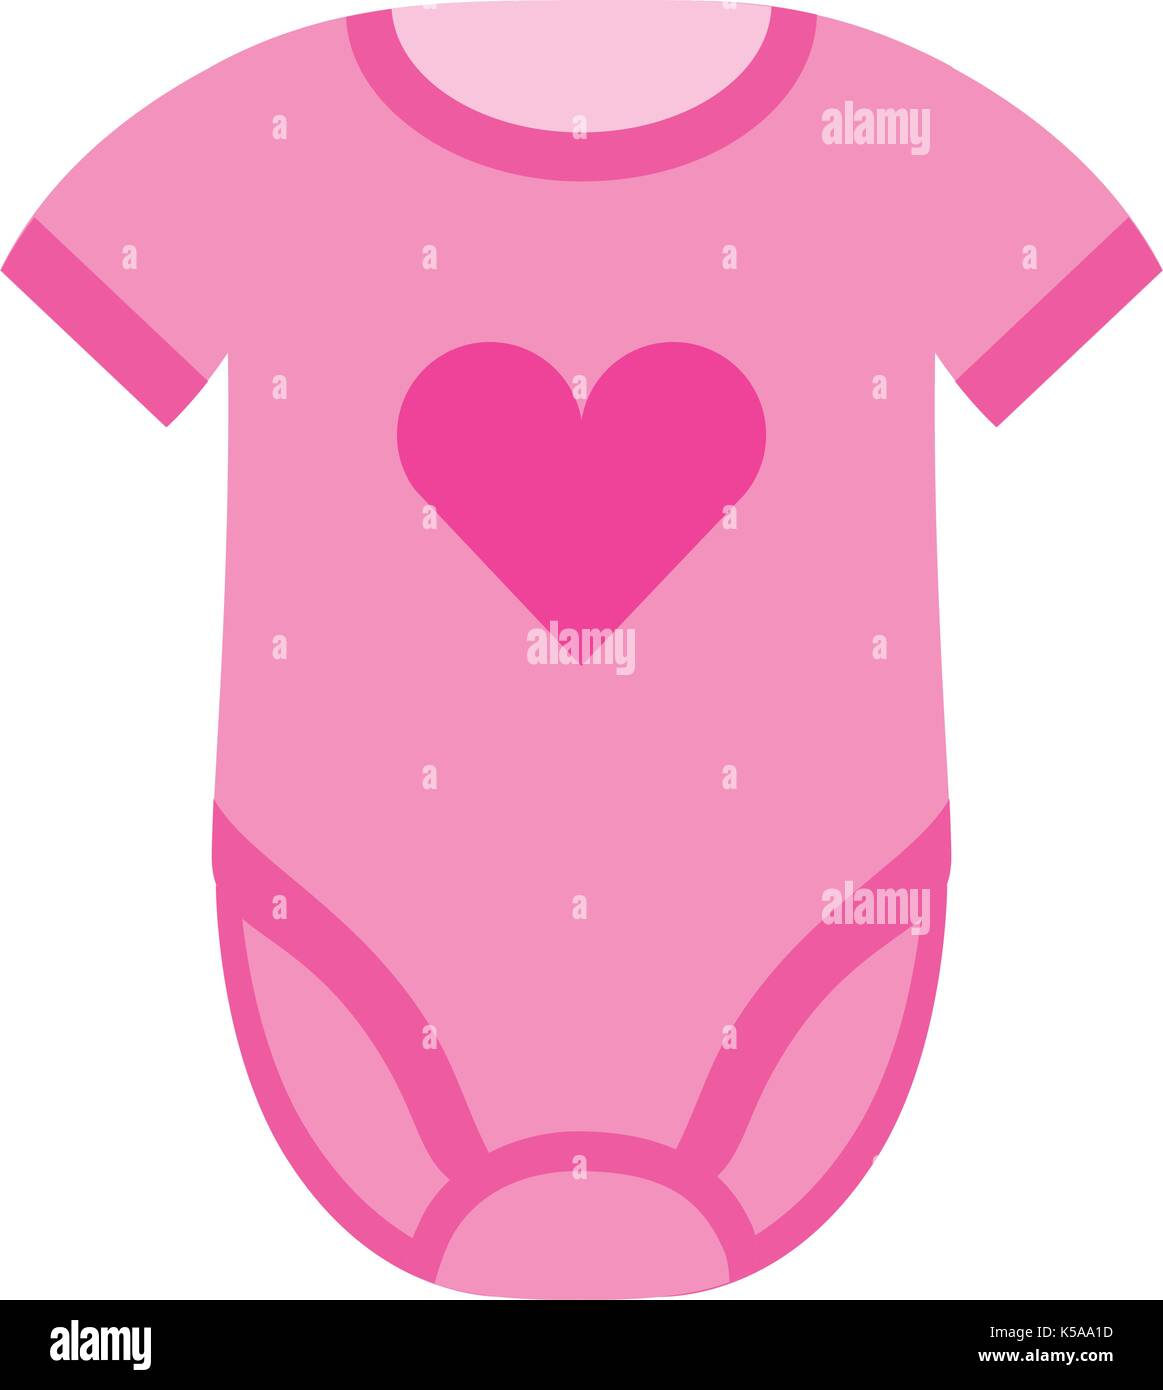 1c7c6aca0 cute clothes girl baby shower gift icon Stock Vector Art ...